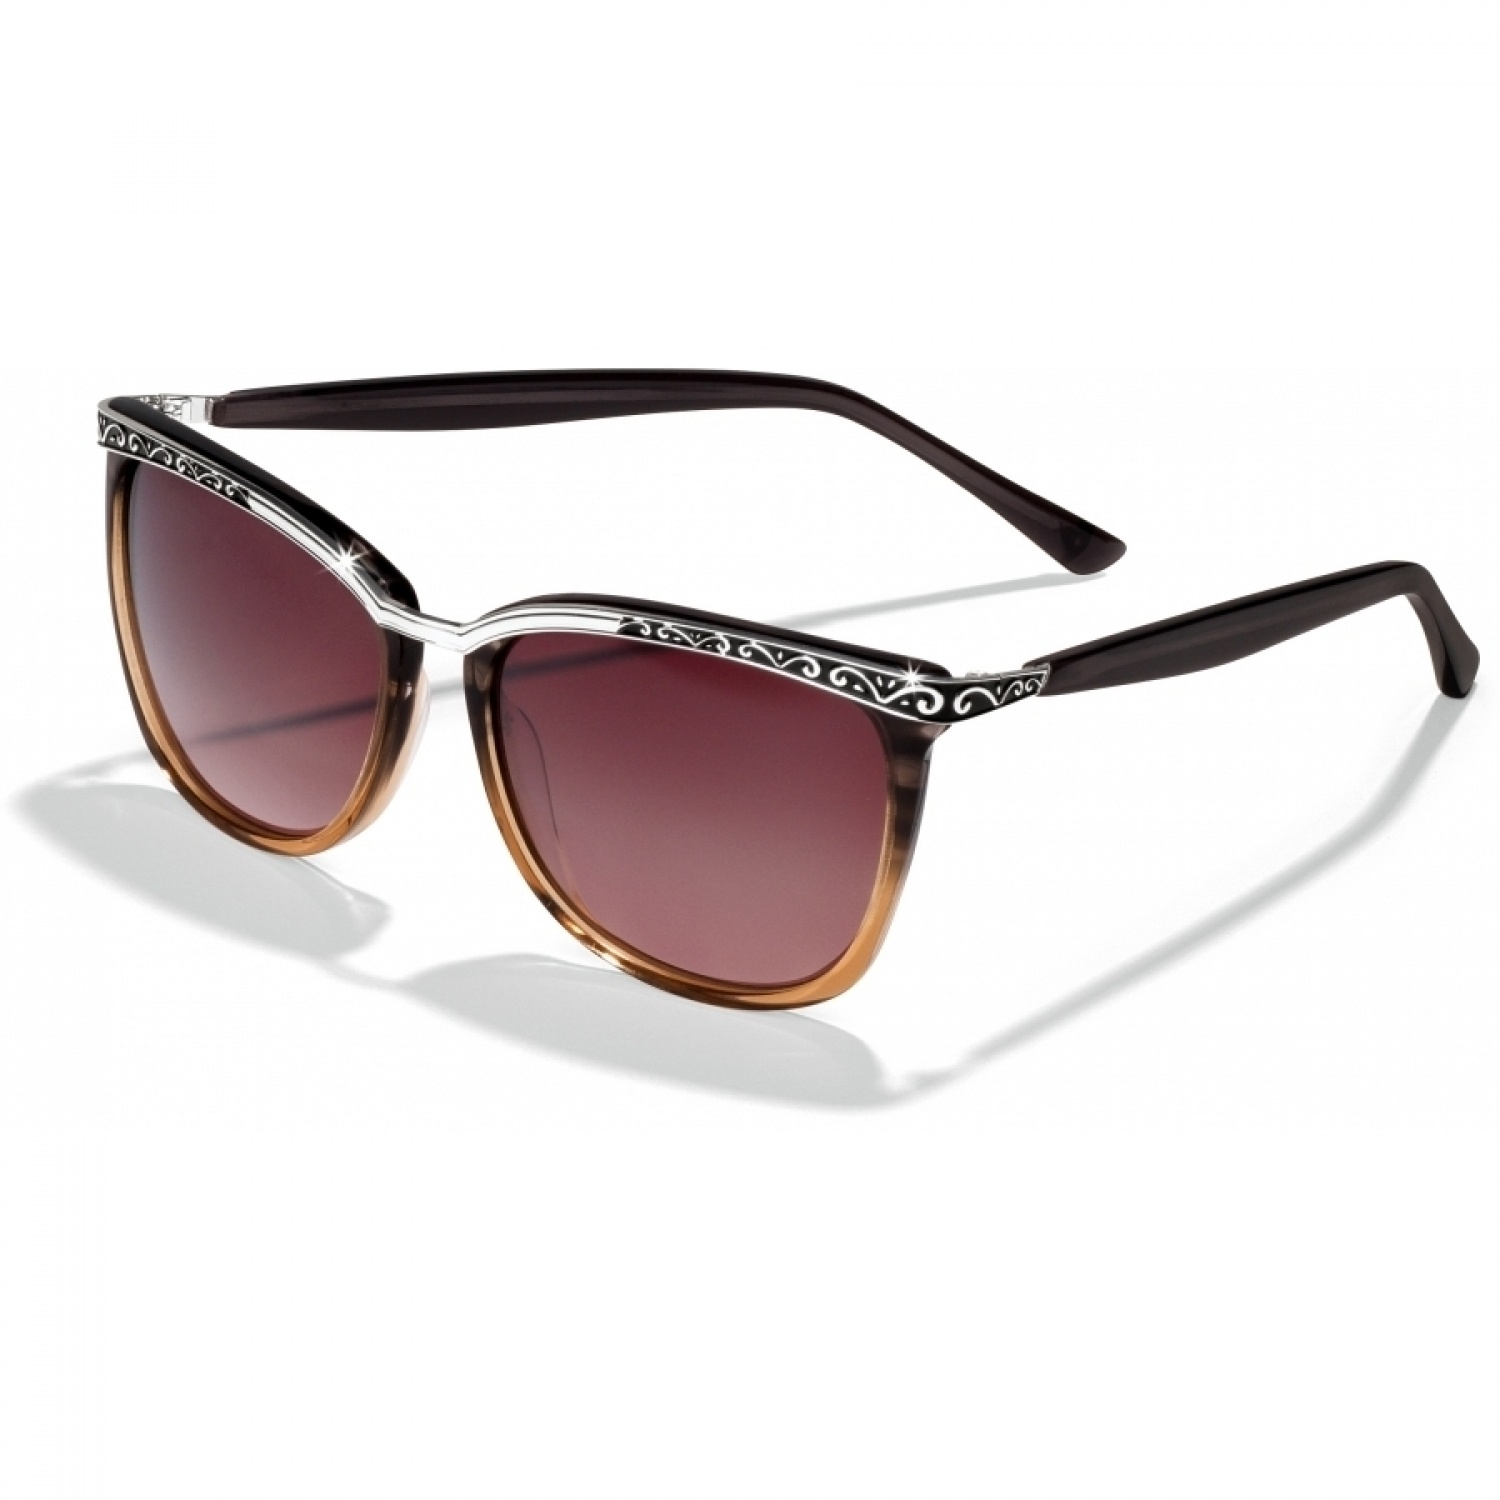 31781d2527628 La Scala La Scala Fade Sunglasses Sunglasses